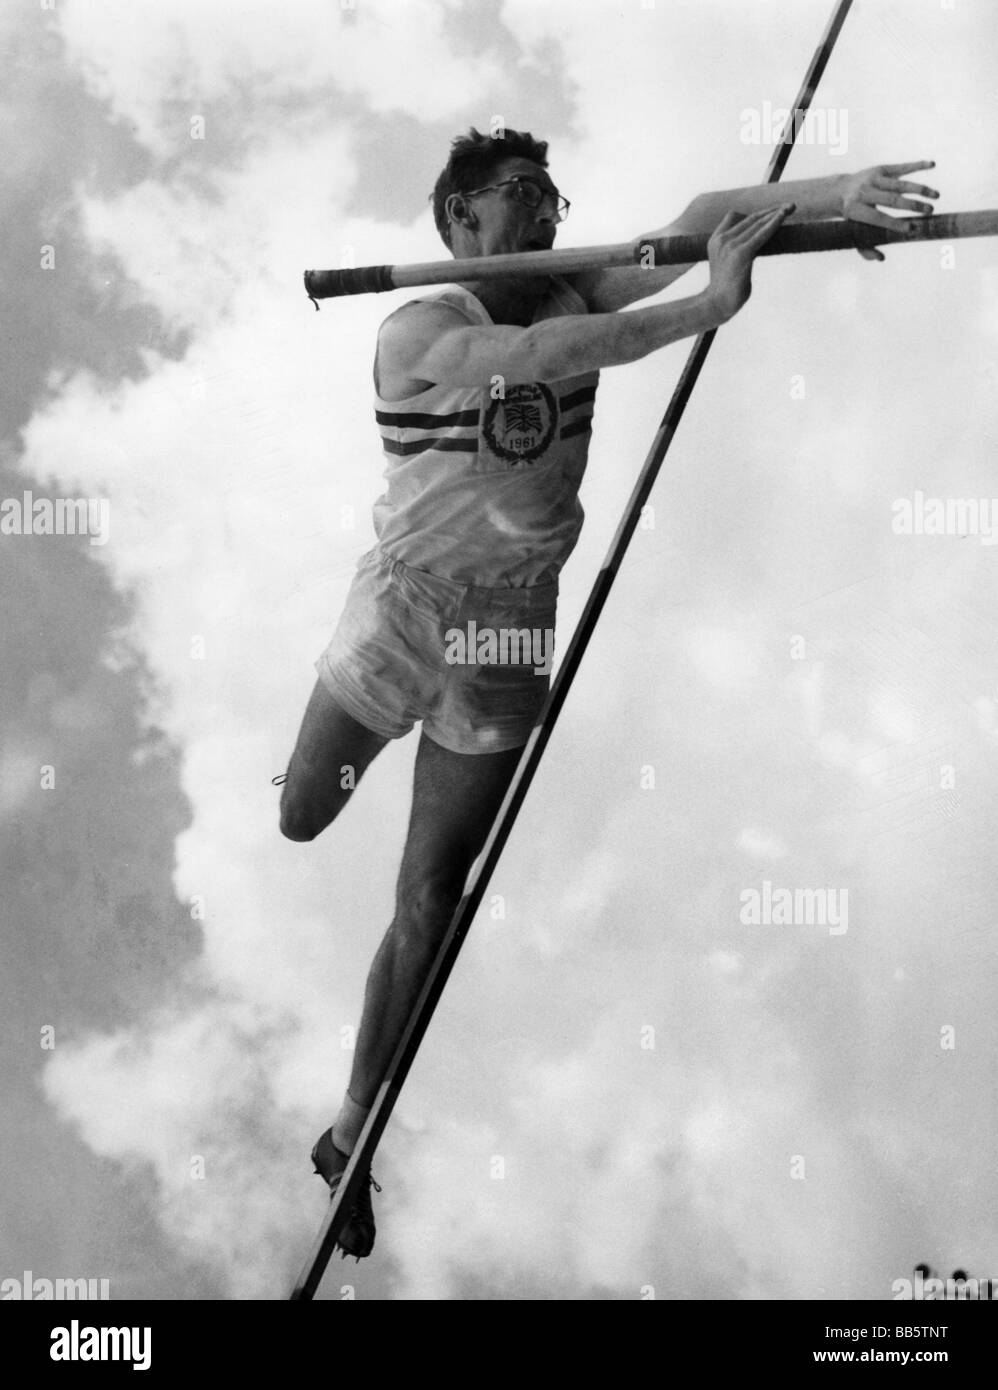 sports, athletic, pole vault, vaulter during jump, White City Stadium, London, 1961, Additional-Rights-Clearances - Stock Image